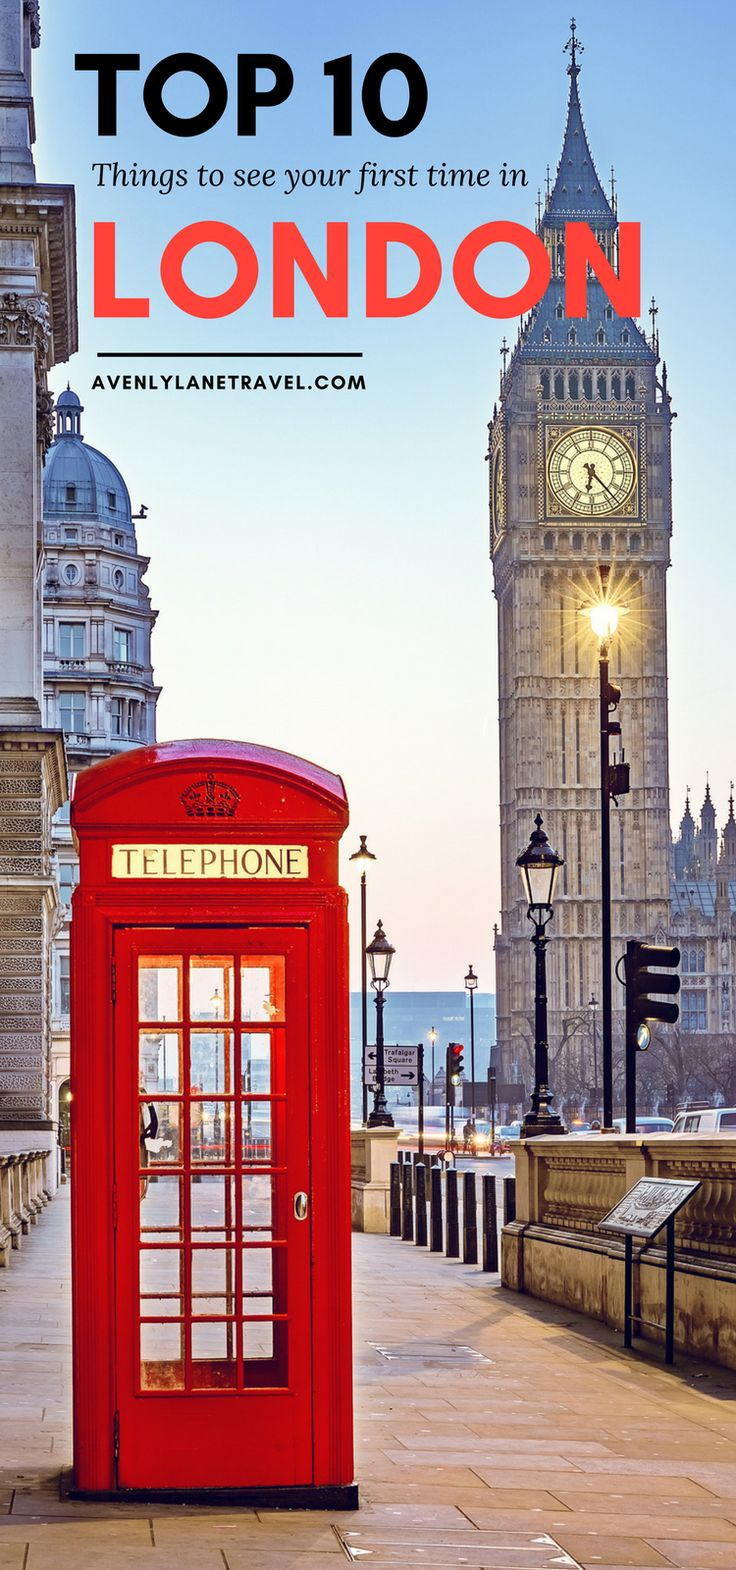 See the top 10 attractions you can't miss when visiting London, England for the first time!  Double Decker Buses | Harry Potter Studio Tour | London Eye | Big Ben | Avenly Lane Travel